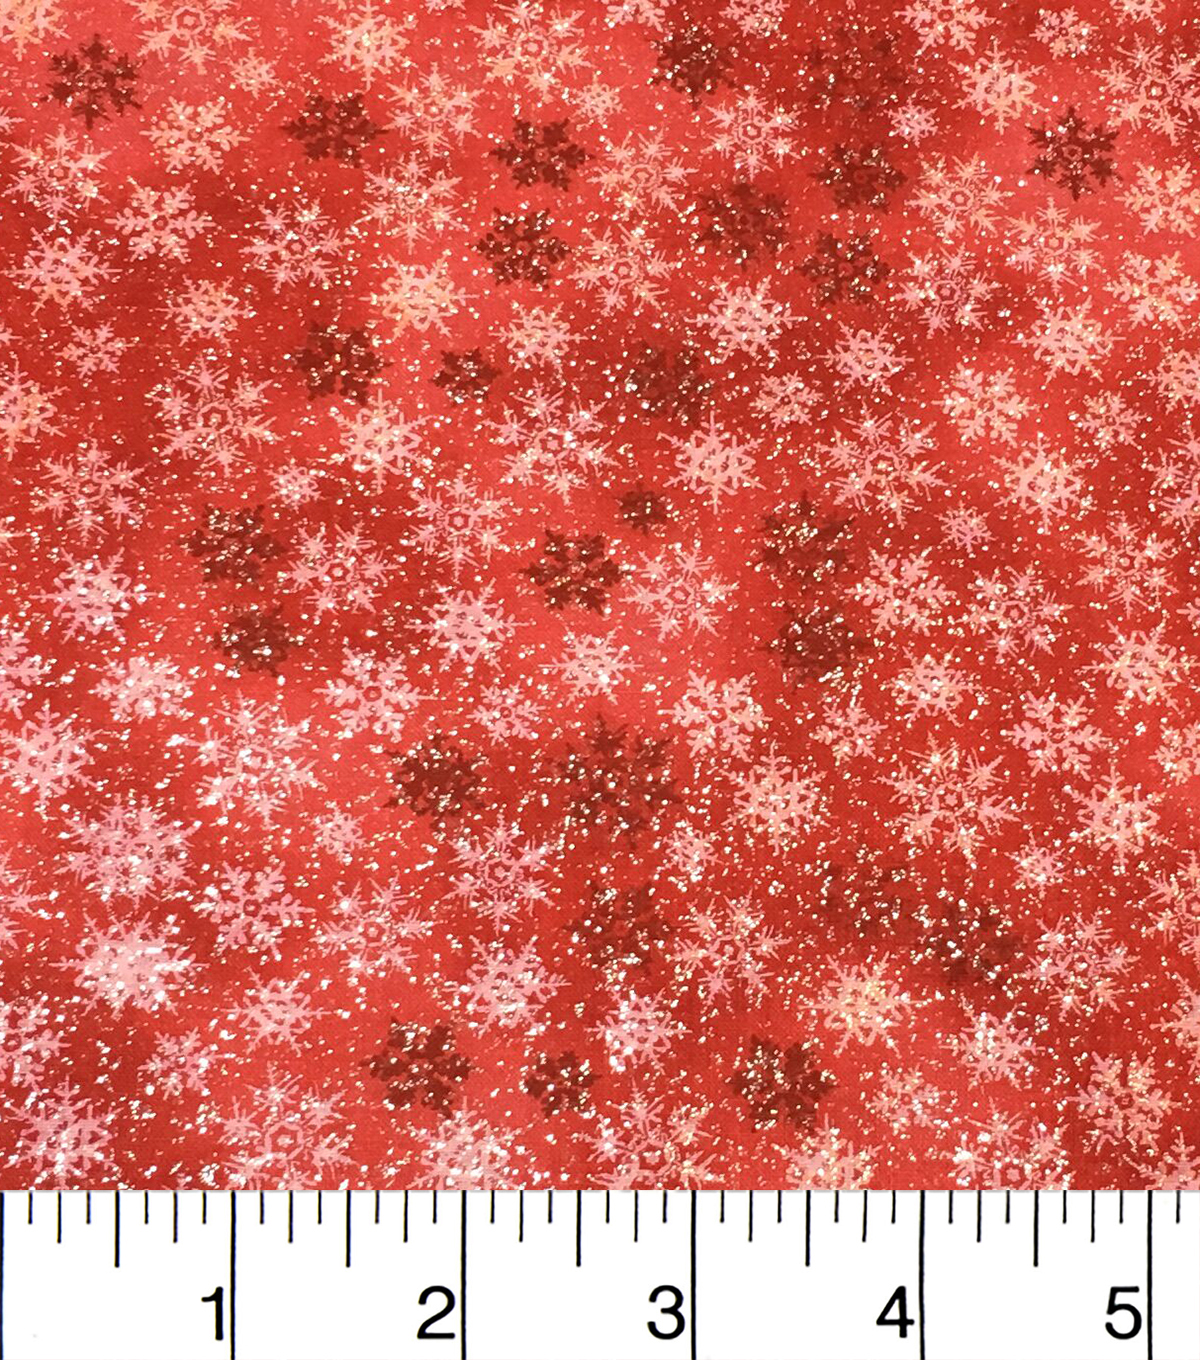 Keepsake Calico Holiday Cotton Fabric 43\u0022-Red Glitter Snowflake